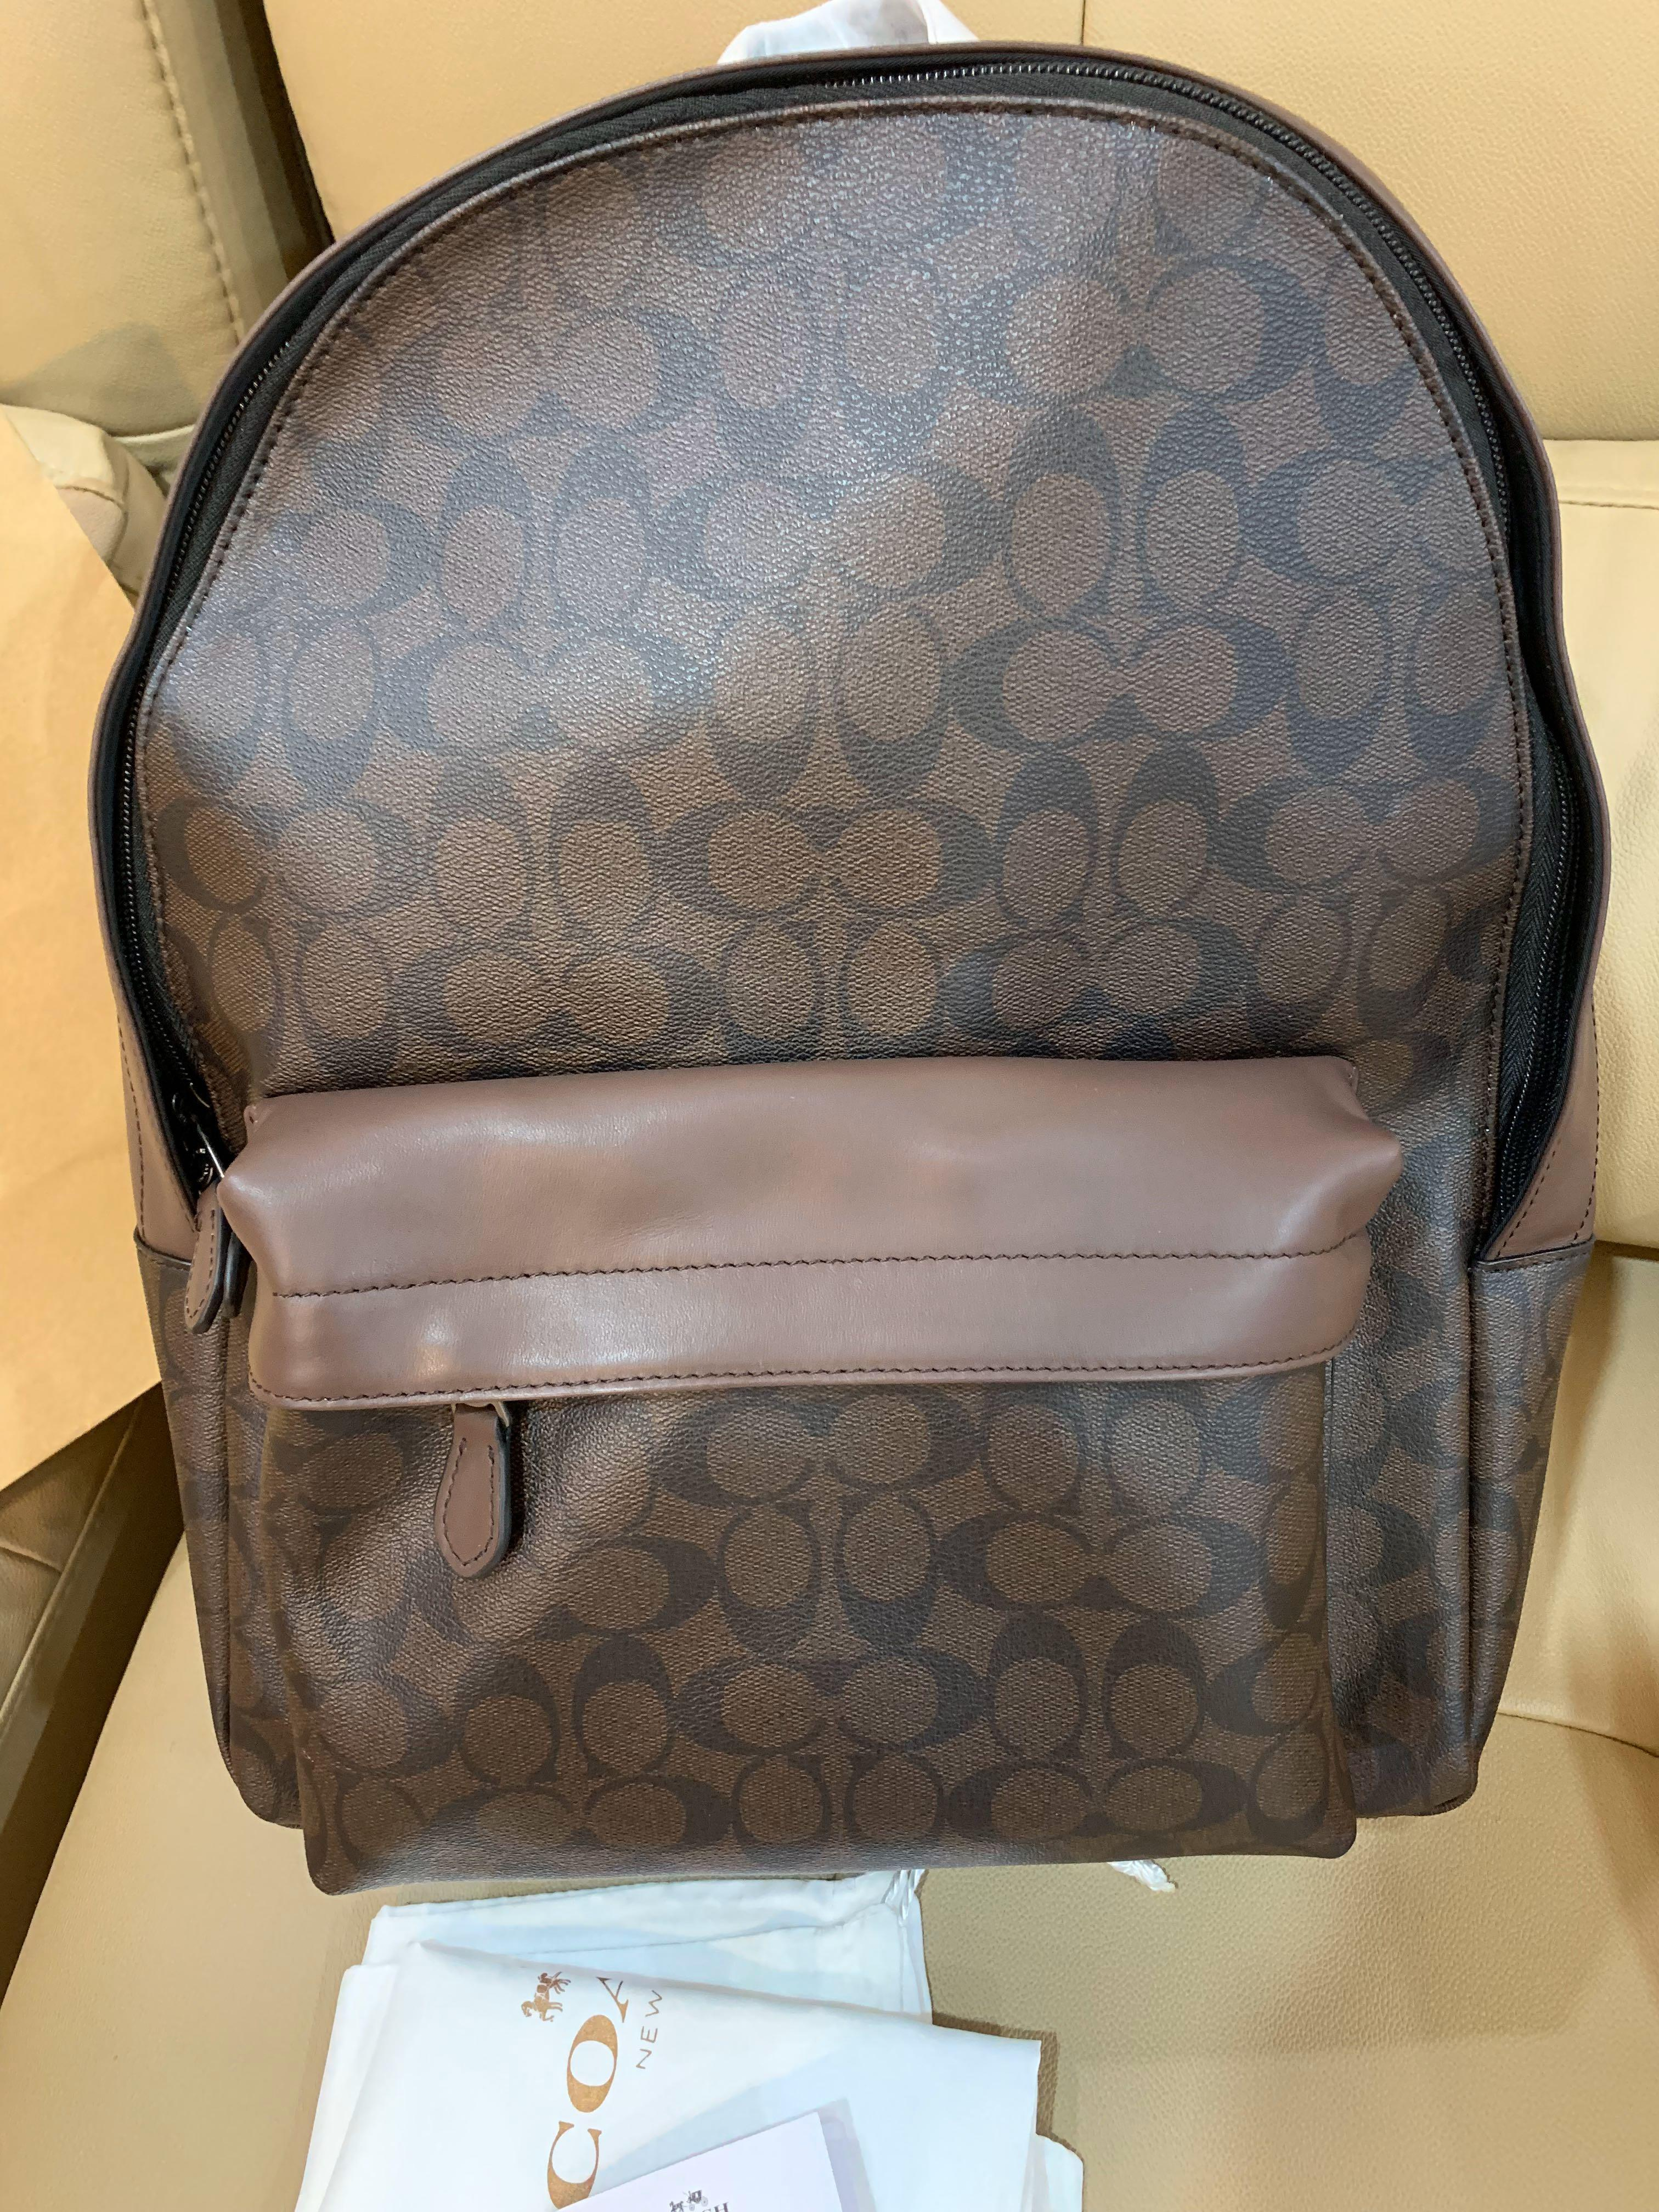 (Clearance)Ready Stock Authentic coach men backpack monogram traveller bag laptop bag hbbbnj